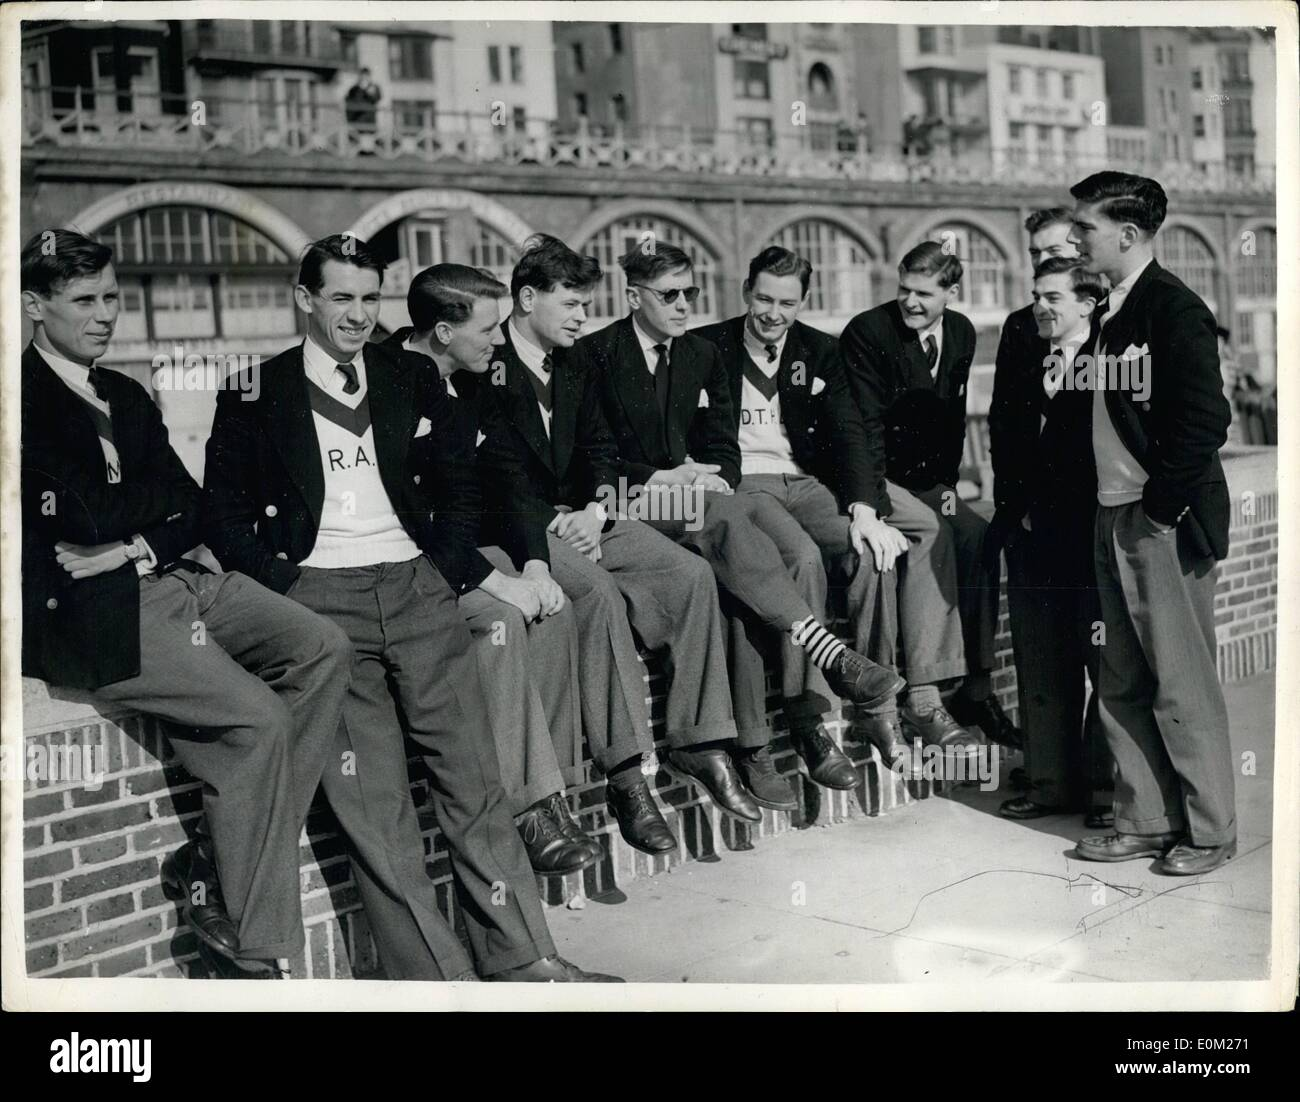 Mar. 03, 1953 - Oxford Boat Race Crew Relax At Brighton: Members of the Oxford boat-race crew, seen as they relax at Brighton yesterday. (L to R): H. Quick, R. Byatt, J. Howles, M.L. Thomas, E.B. Hammond, D.T.H. Davenport (hidden), J.M. Wilson (standing), W.R. Marsh, cox, J. Sobbo and A.J. Smith. - Stock Image